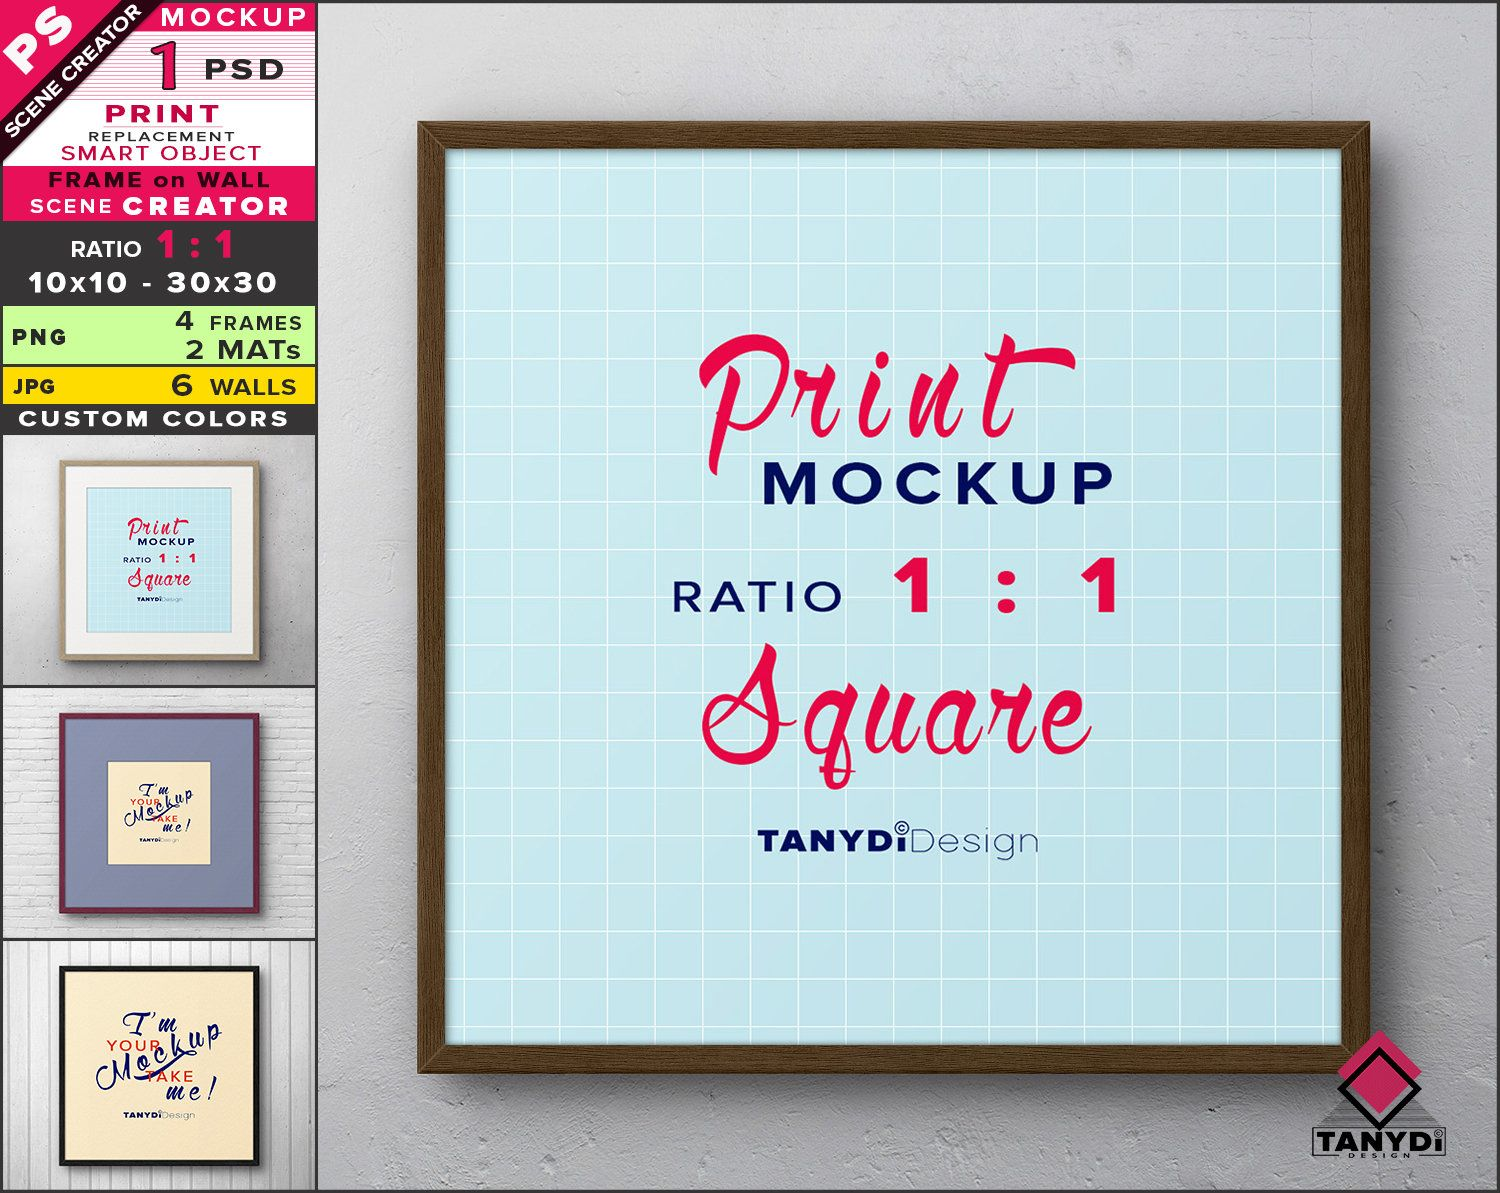 Square Frame On Wall Photoshop Print Mockup Png Wood Frame And 2 Mats Smart Object Mock Up Scene Creator F 11 W 6 Scene Creator Frames On Wall Frame